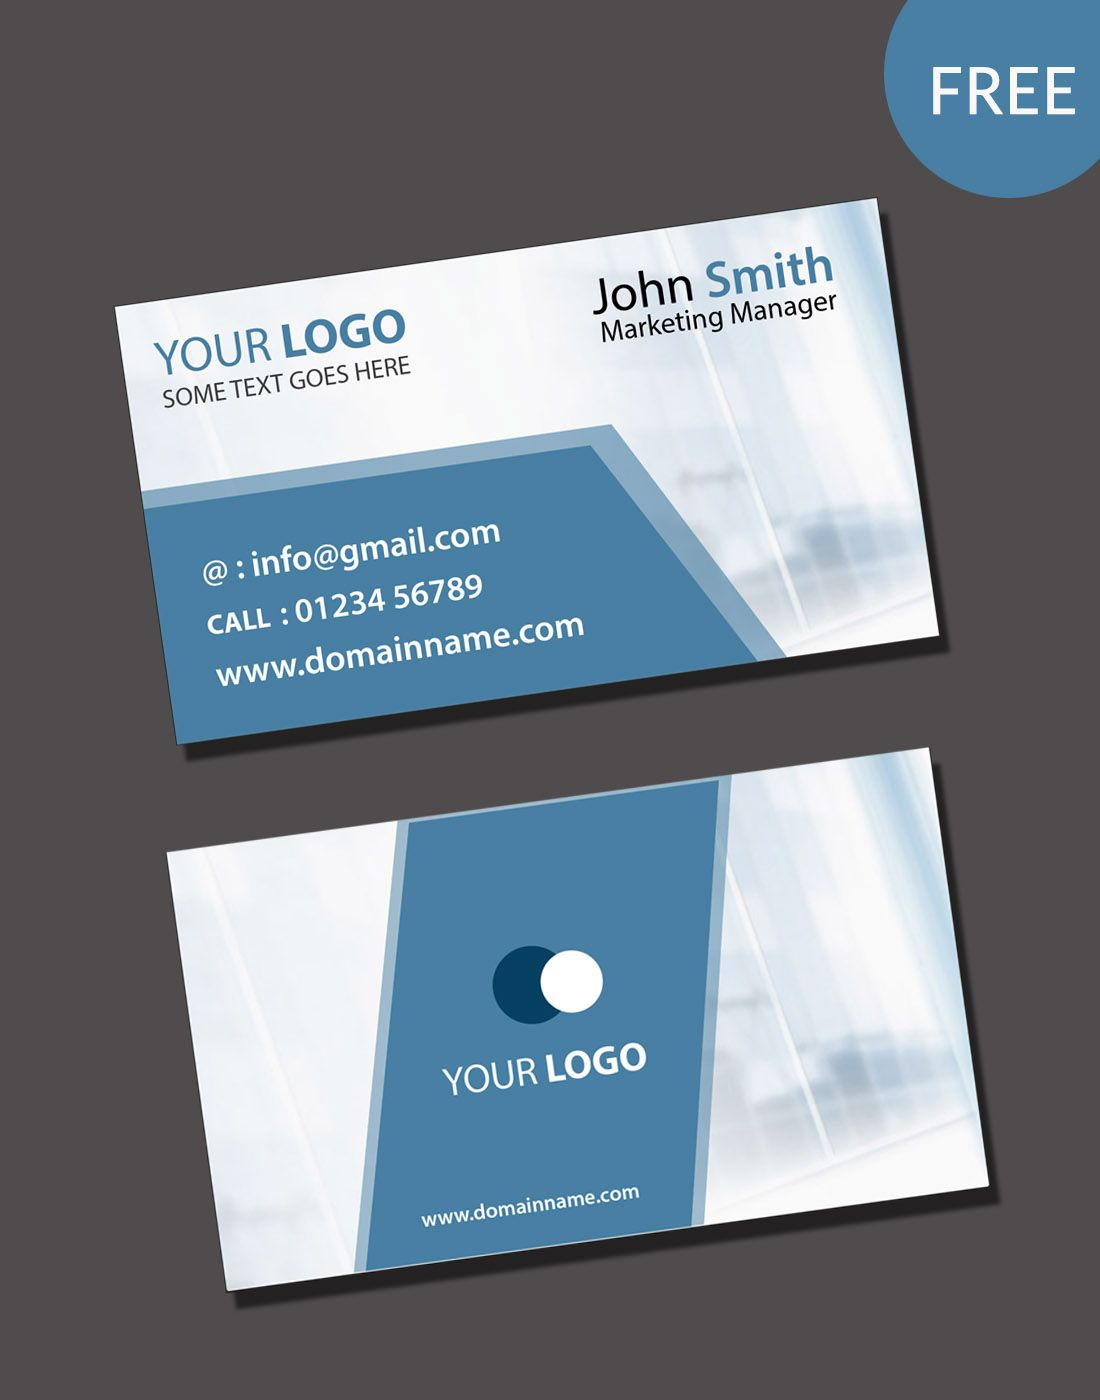 Visiting Card Psd Template Free Download Throughout Visiting Card Templates Psd Free D Visiting Card Templates Business Card Template Psd Calling Card Template